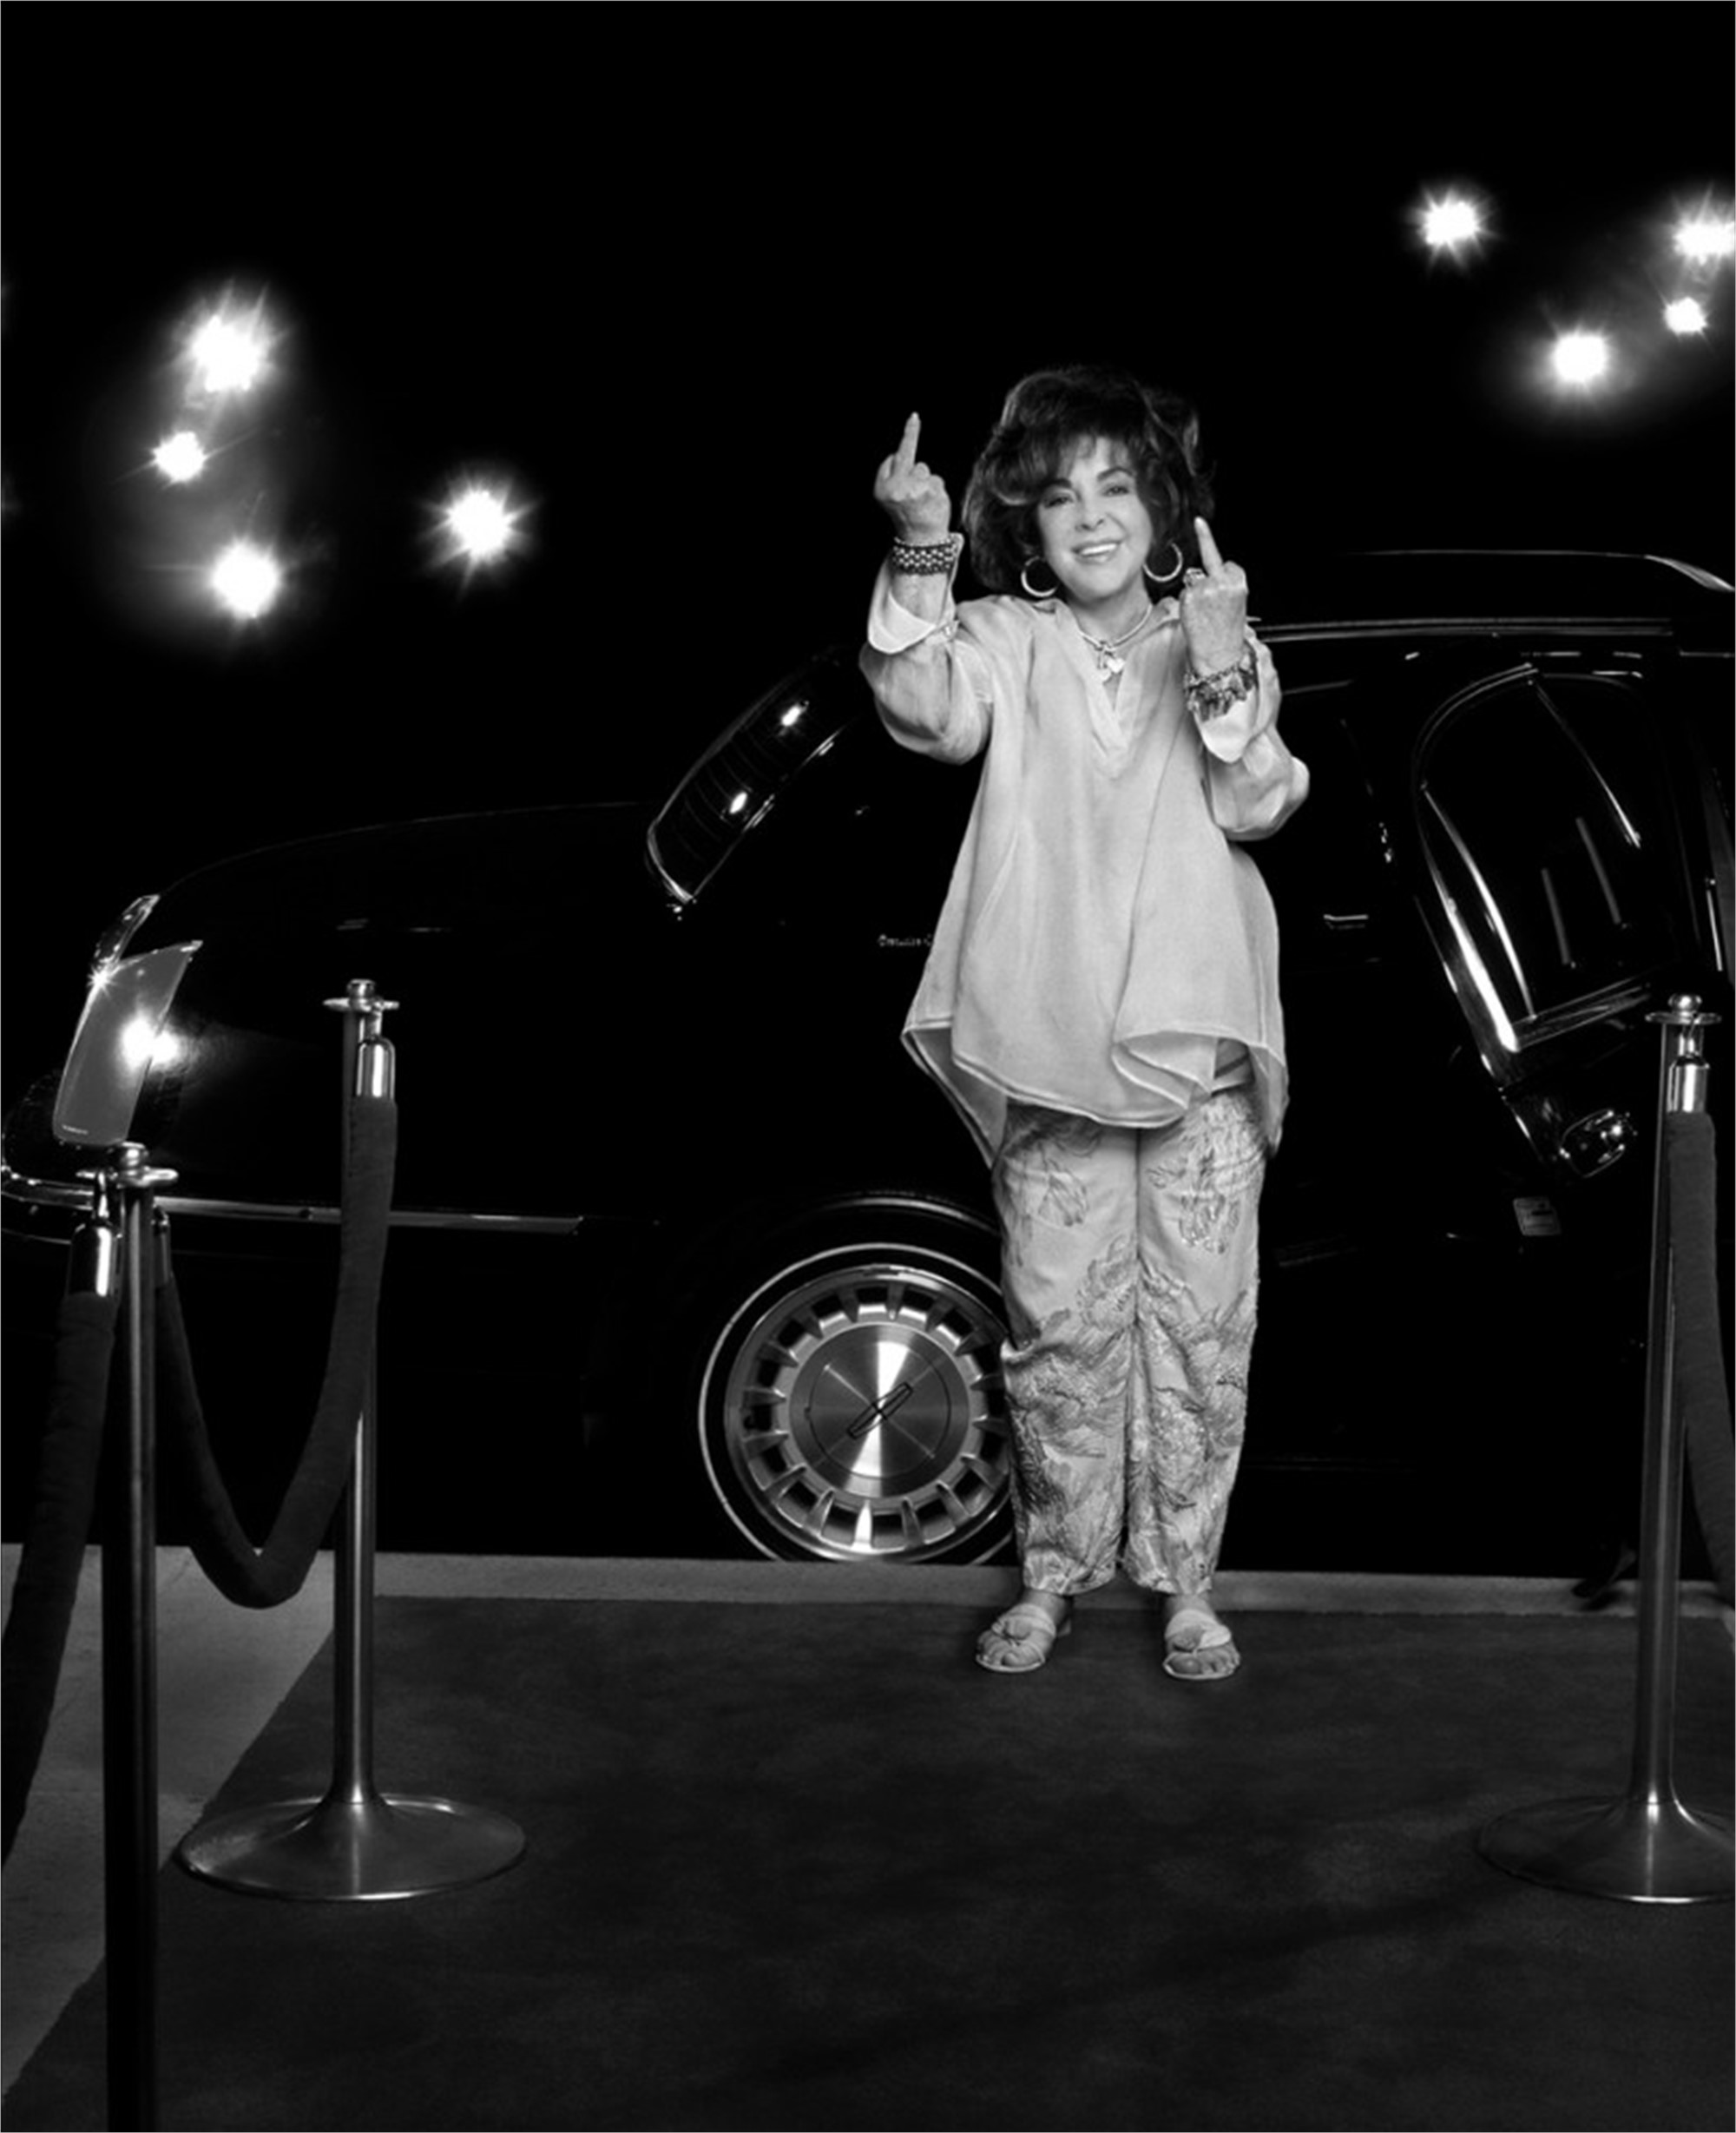 00081 Elizabeth Taylor Off Outside of Limo BW by Timothy White